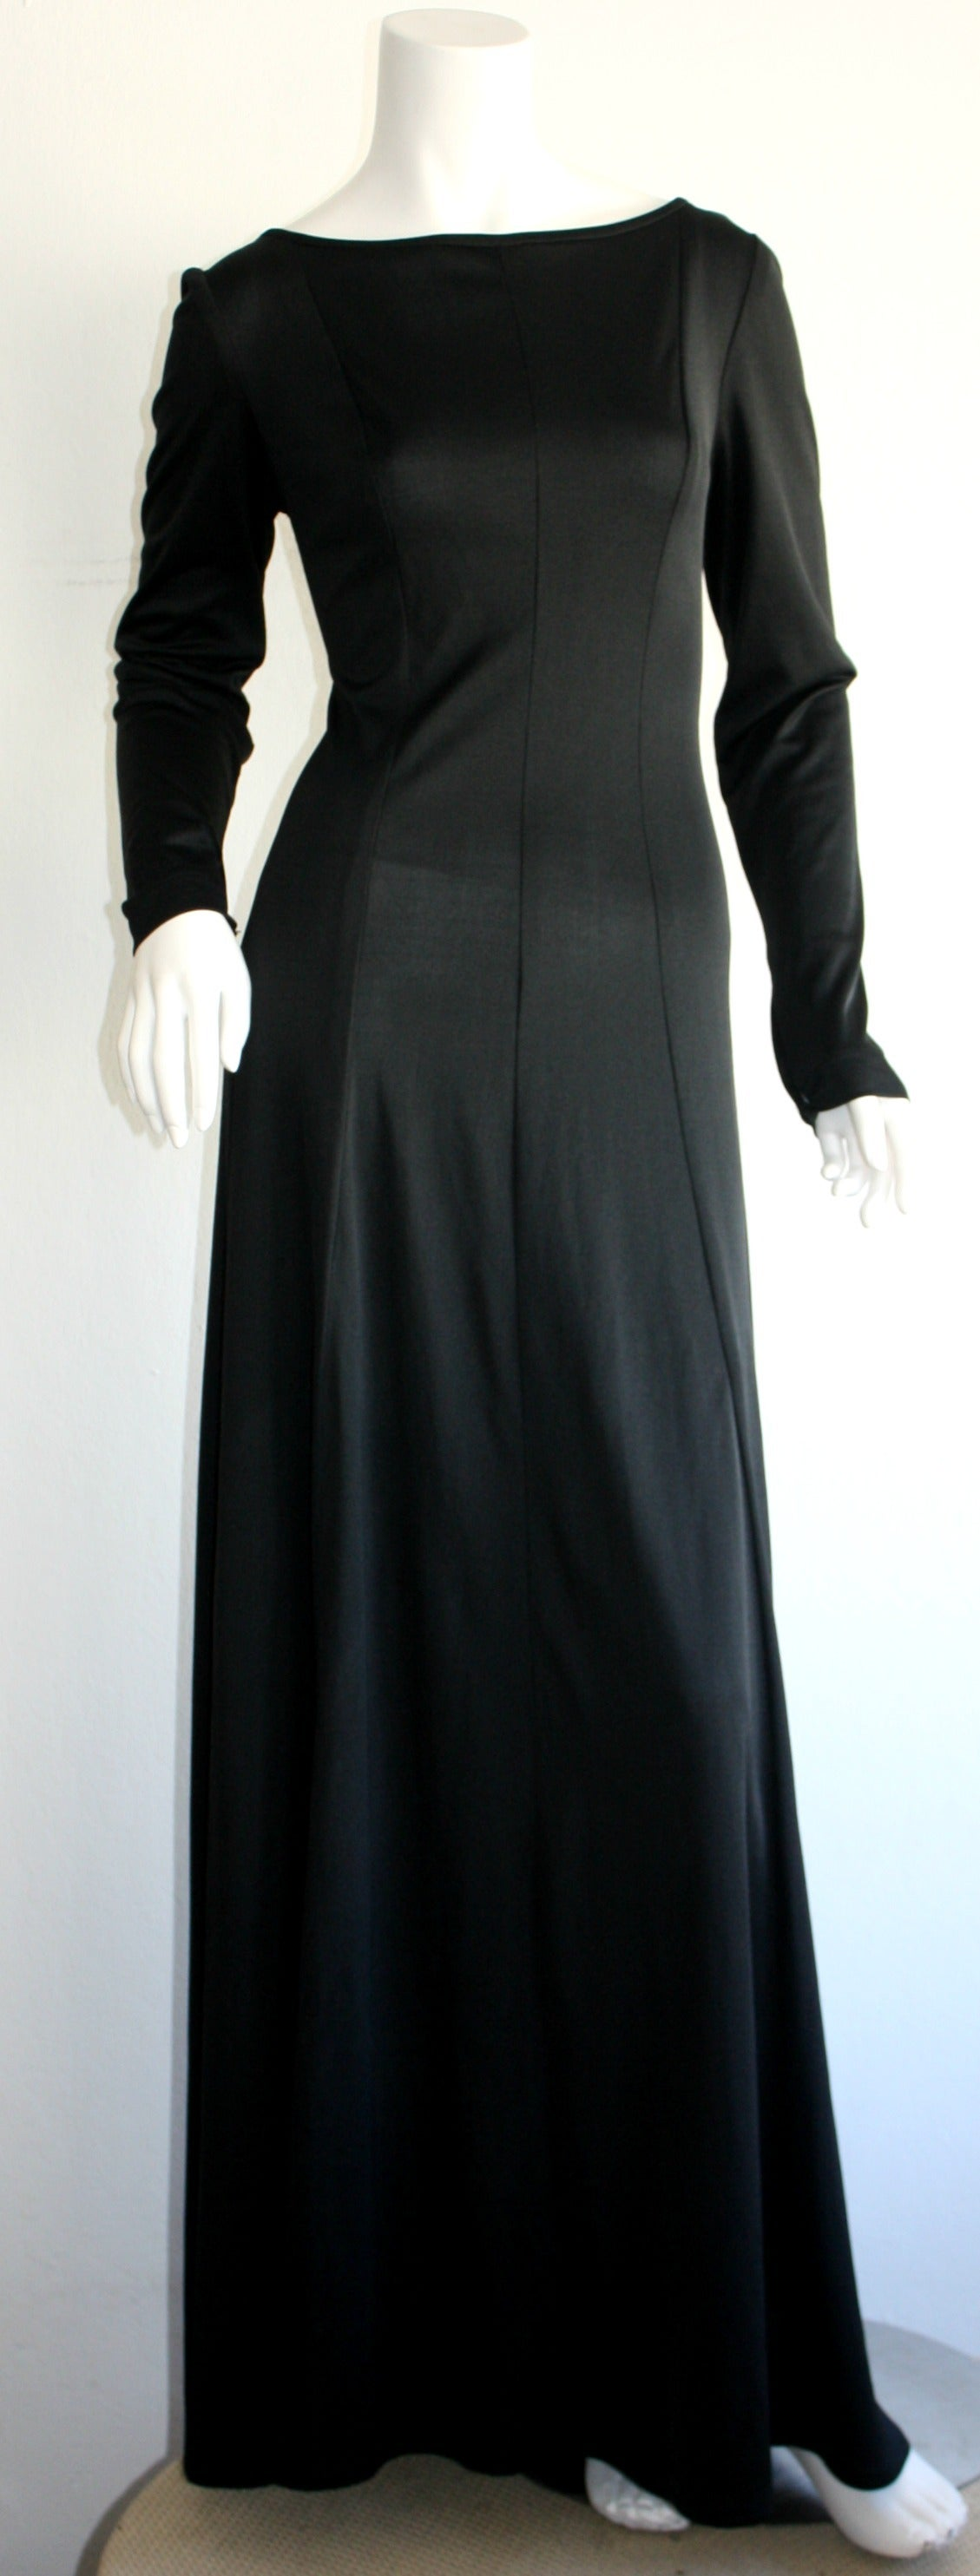 Jean Varon Sexy ' Plunging Back ' 1970s Black Jersey Gown 5